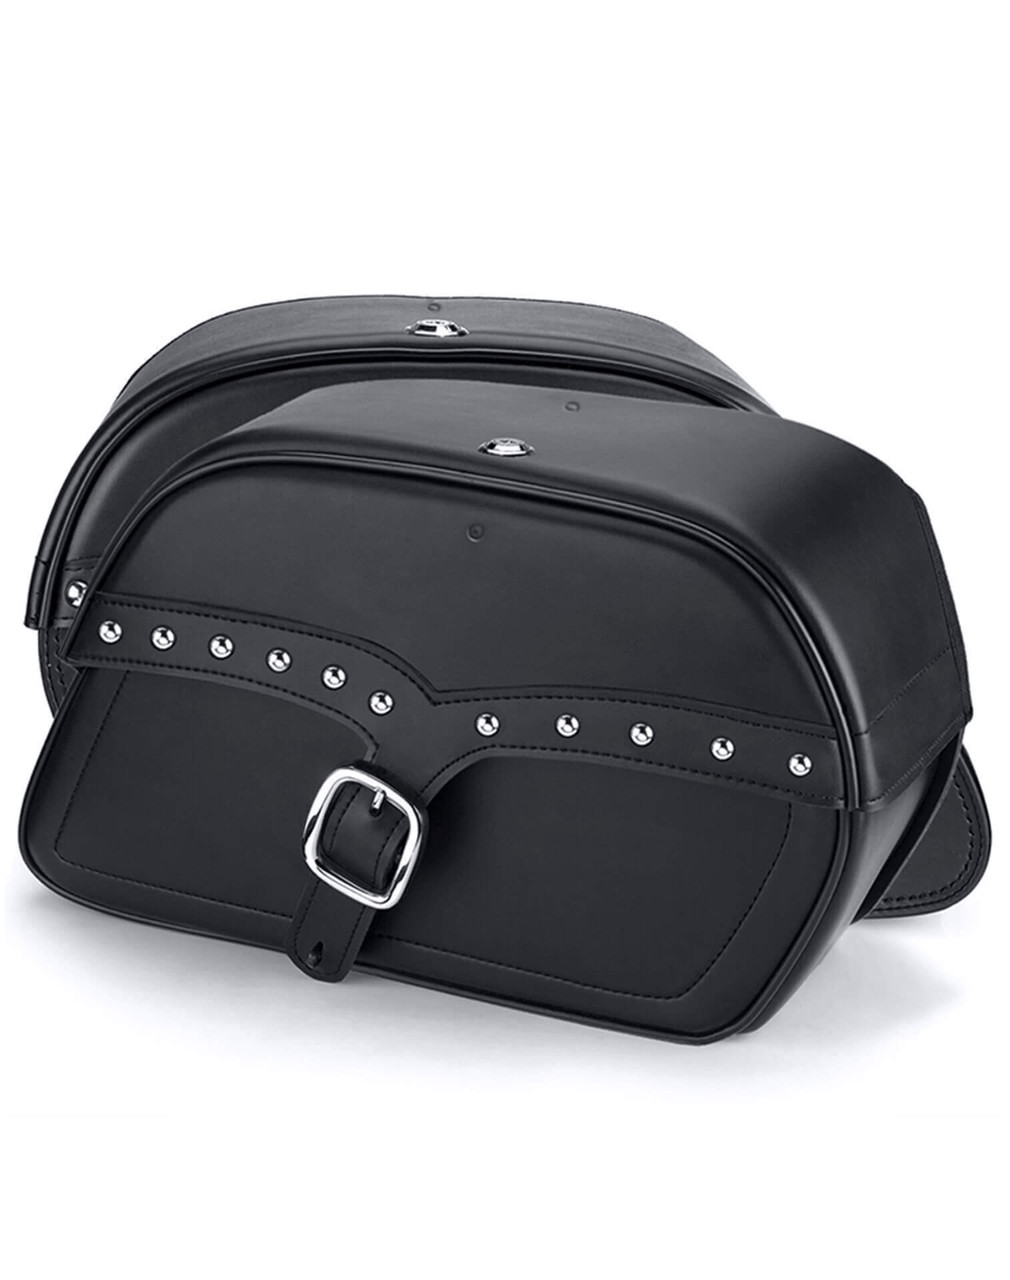 Viking Charger Single Strap Studded Medium Motorcycle Saddlebags For Harley Softail Custom FXSTC Both Bags View